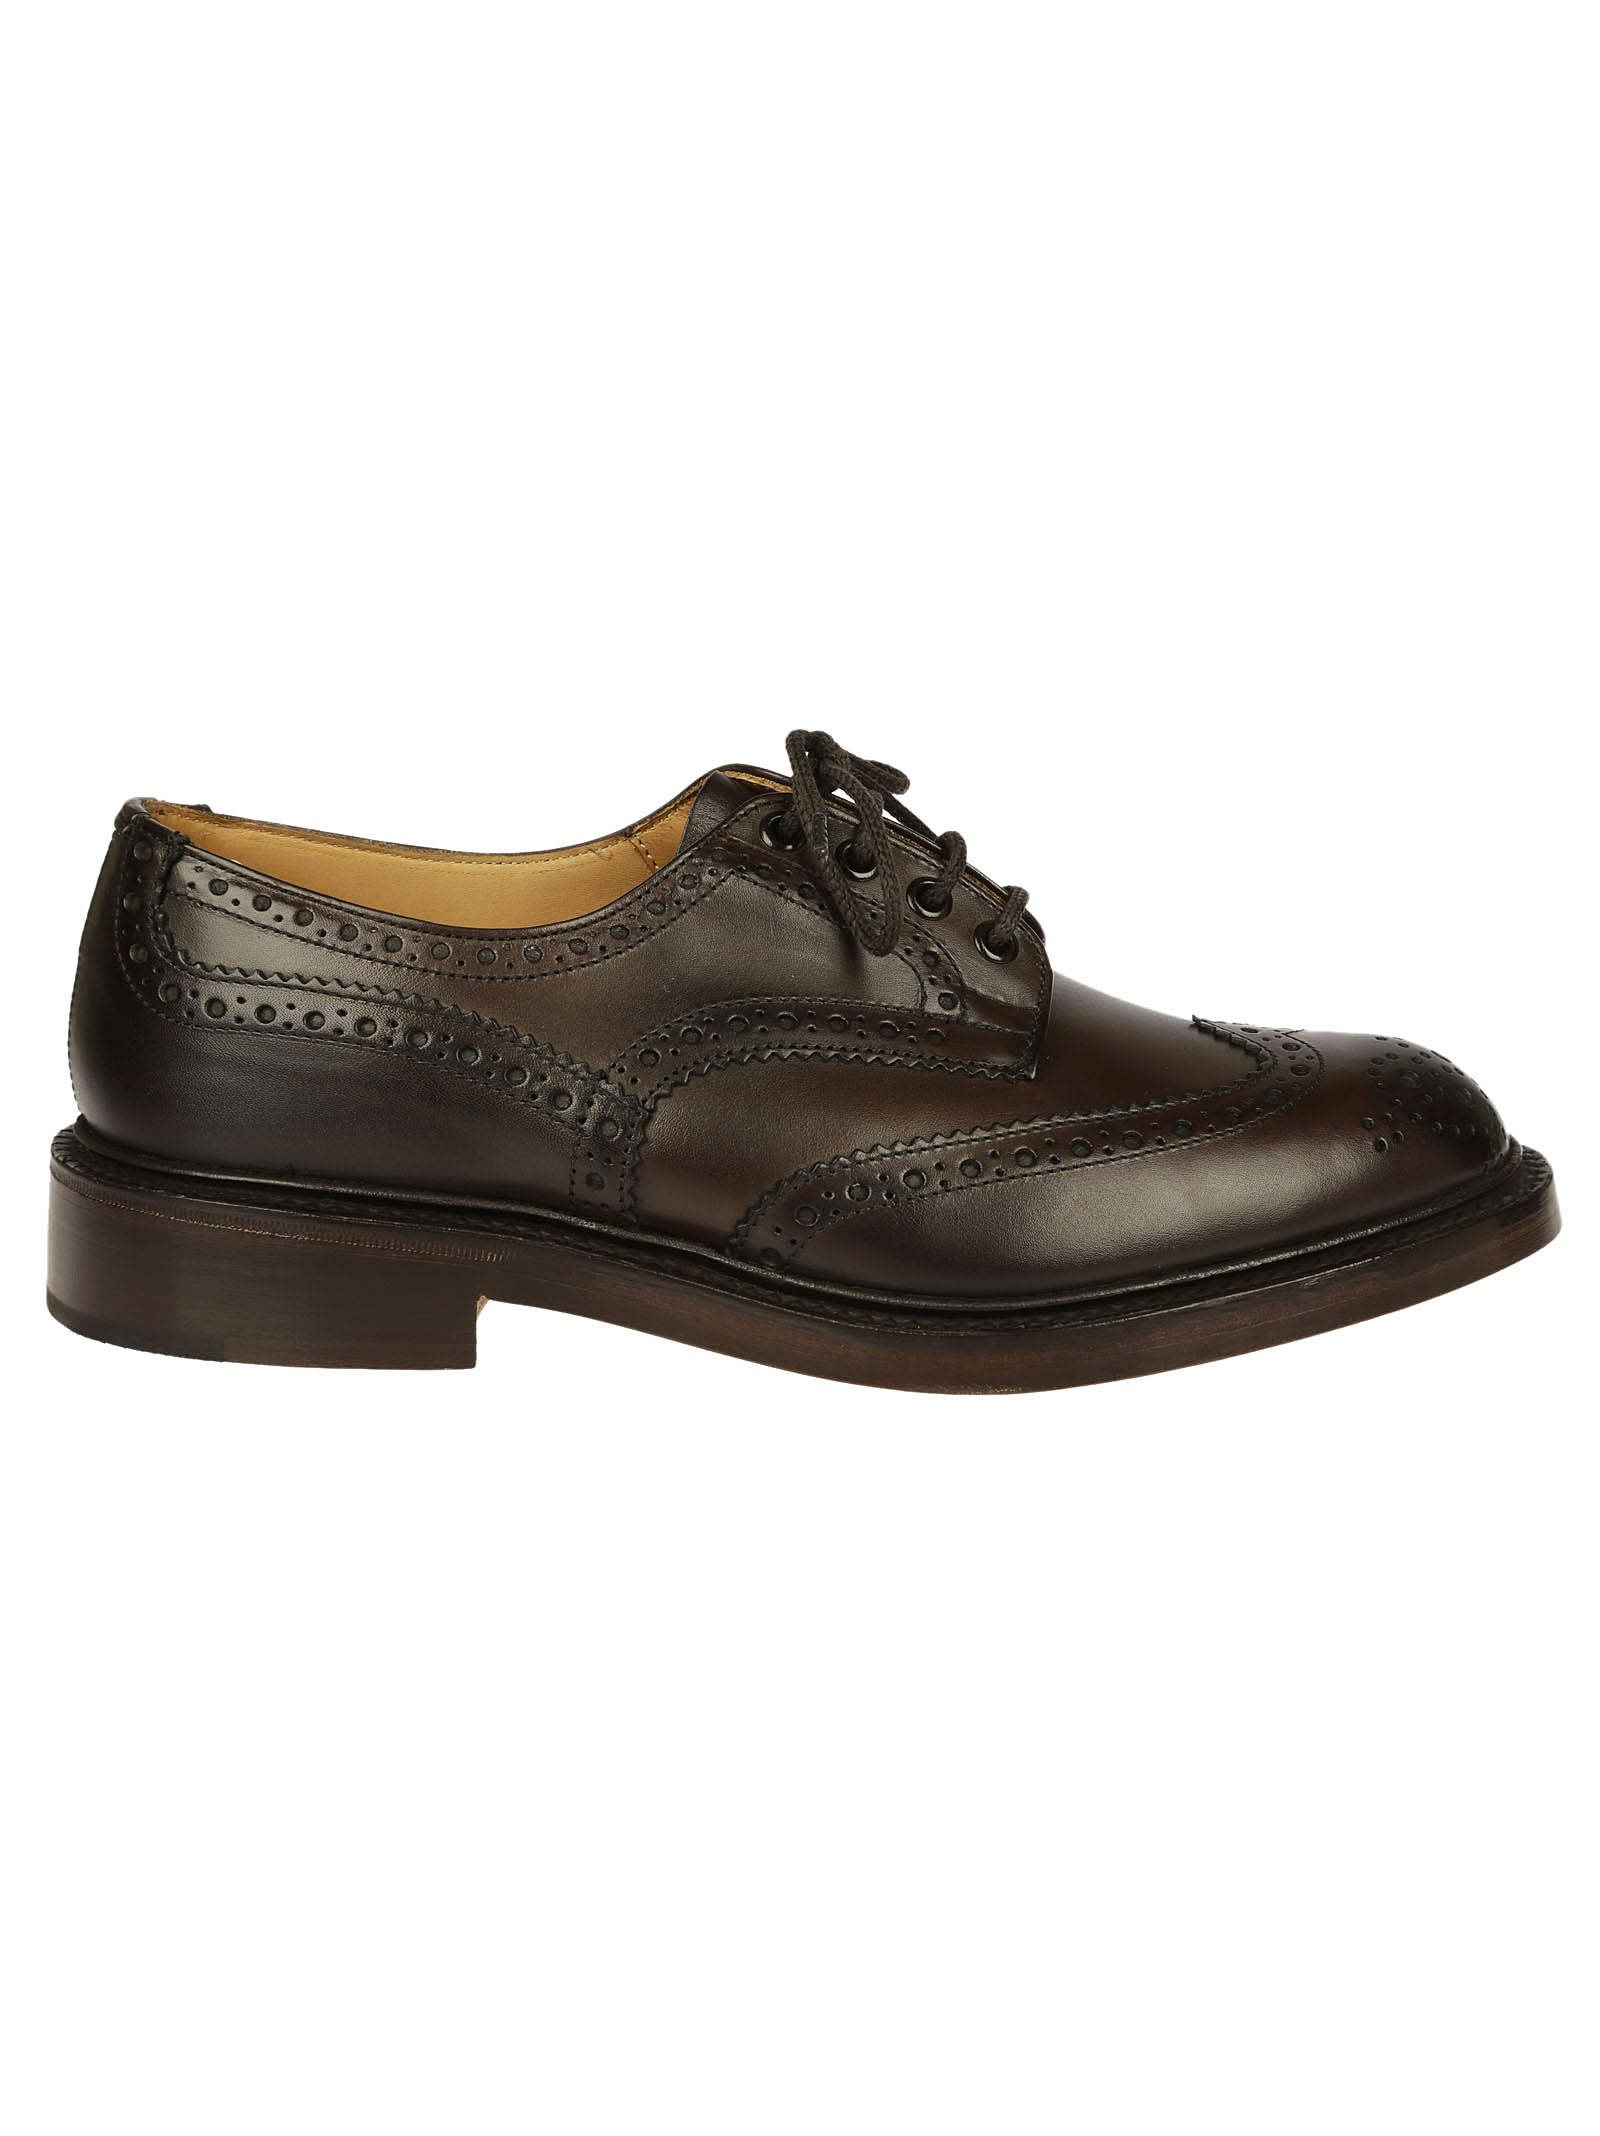 Trickers Bourton Perforated Brogues